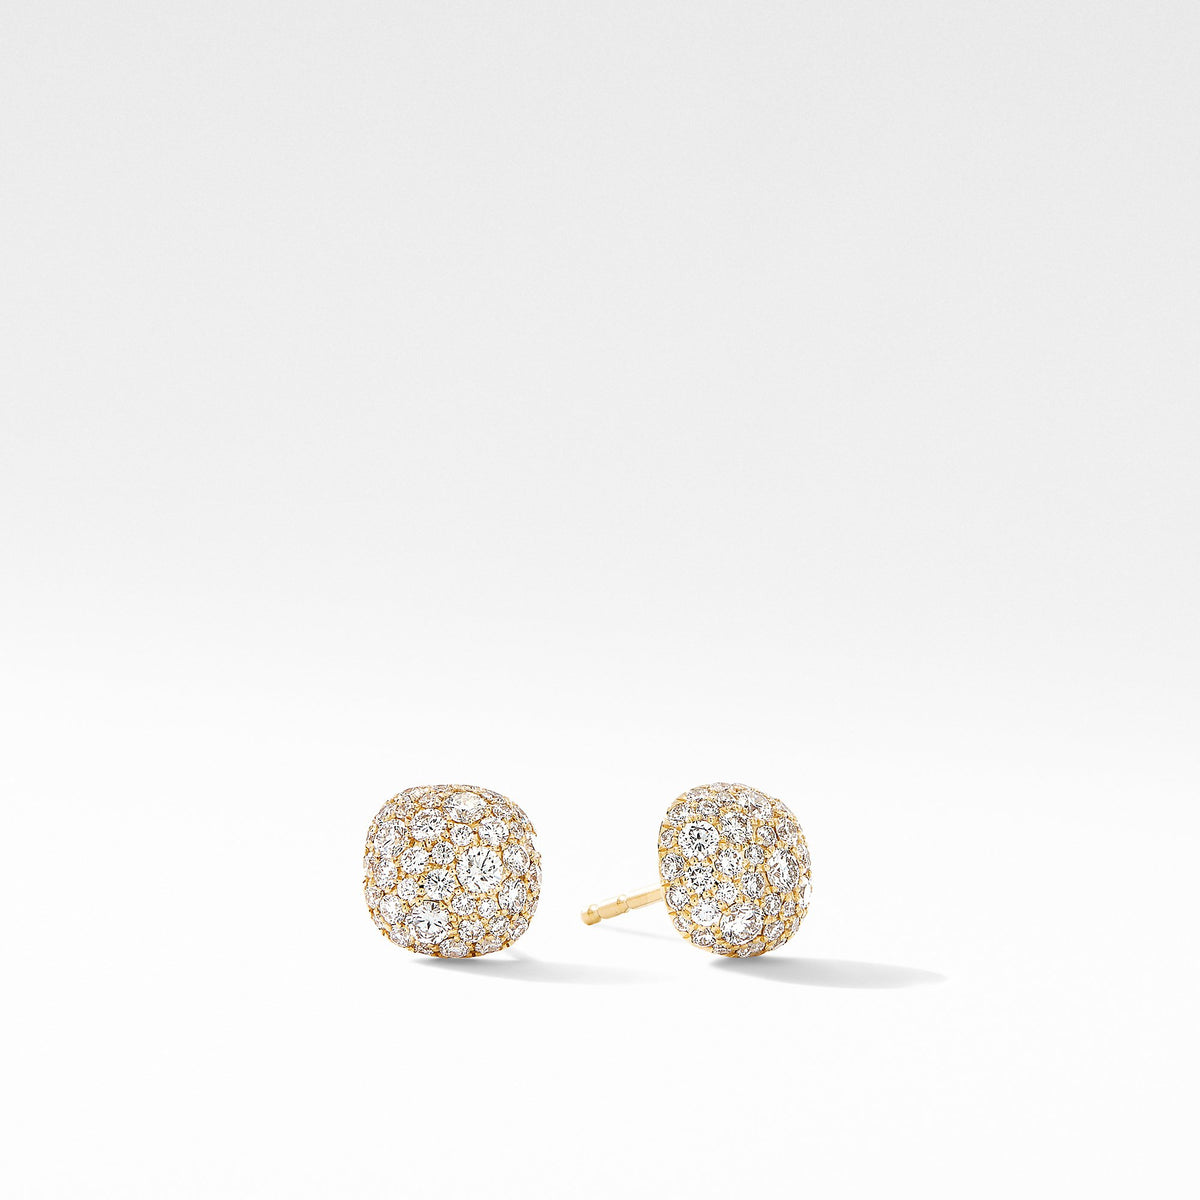 Small Cushion Stud Earrings in 18K Yellow Gold with  Pave Diamonds